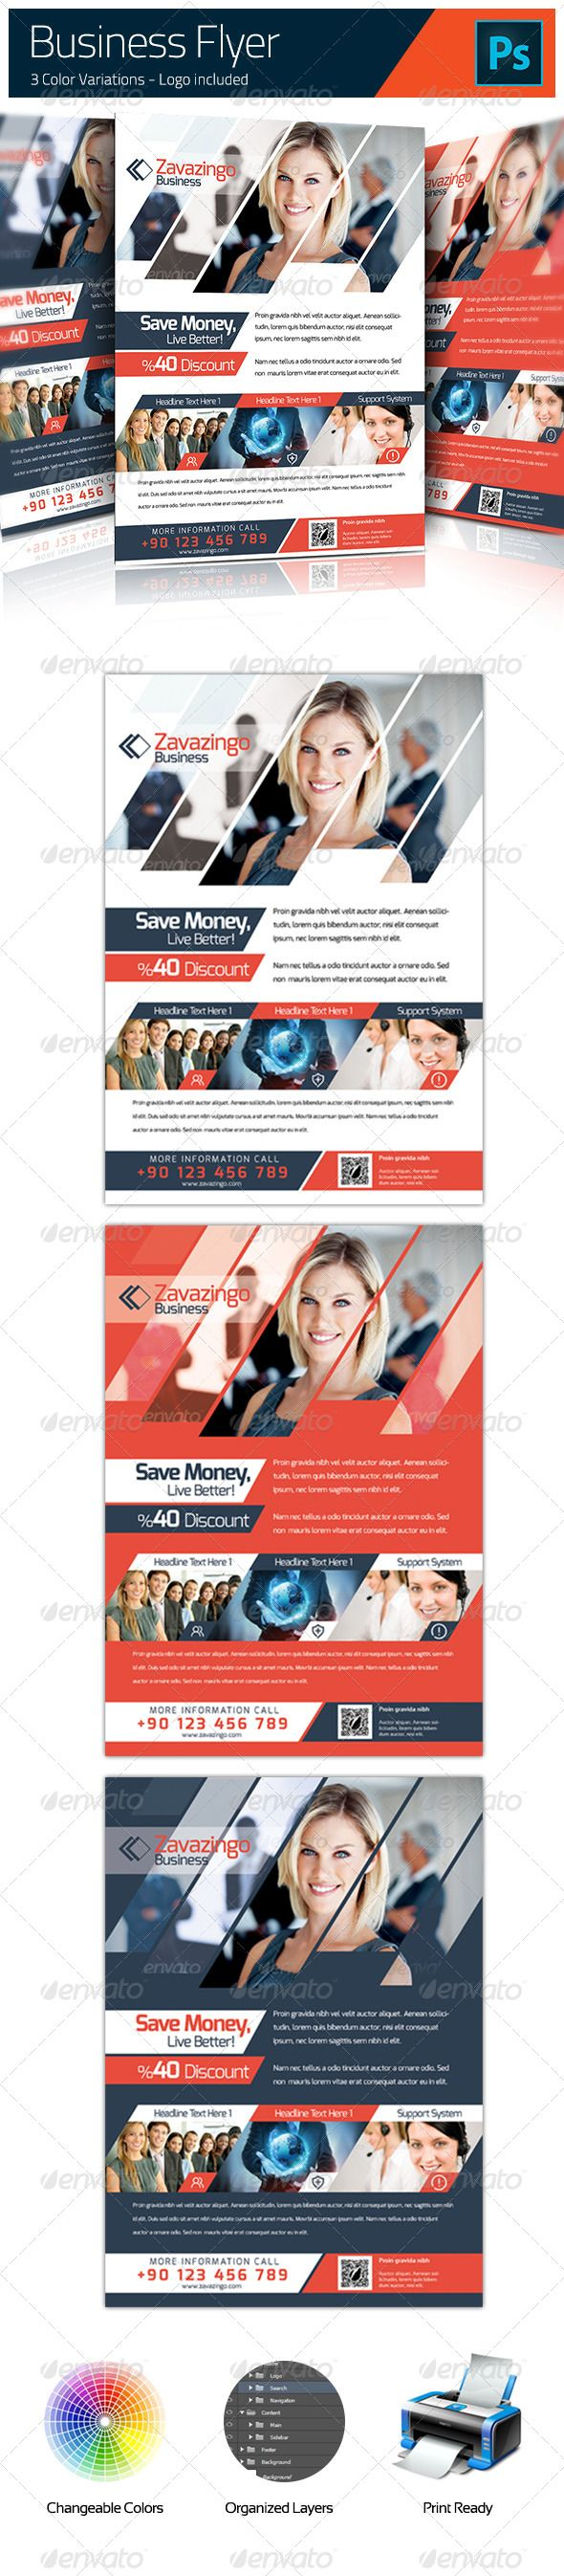 Corporate Flyer #GraphicRiver Features 2 Fully Layered PSD Files, 100% Editable Includes editable vector Logo (Vector Shape) A4 – Print Ready, 300dpi, CMYK – .3 cm bleeds Photos in the preview image are used for display purposes and are not included. Fonts: Exo: .fontsquirrel /fonts/exo If you have some questions, please contact me through my profile page Thank you. Created: 26July13 GraphicsFilesIncluded: PhotoshopPSD Layered: Yes MinimumAdobeCSVersion: CS PrintDimensions: 210x297 Tags: a4